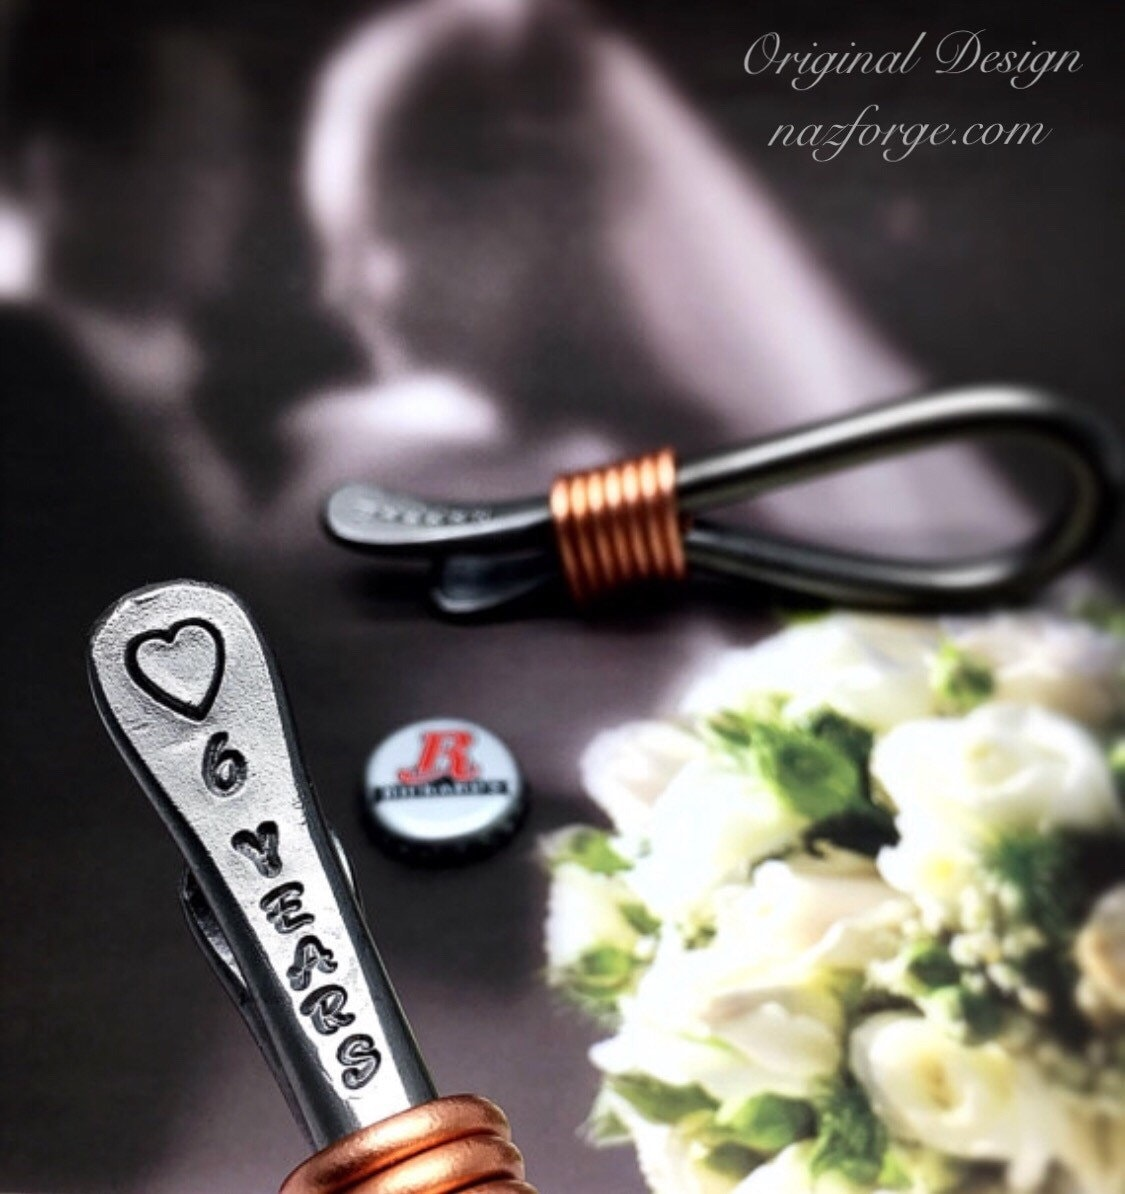 6th Year Iron Wedding Anniversary Gift Bottle Opener For Husband Or